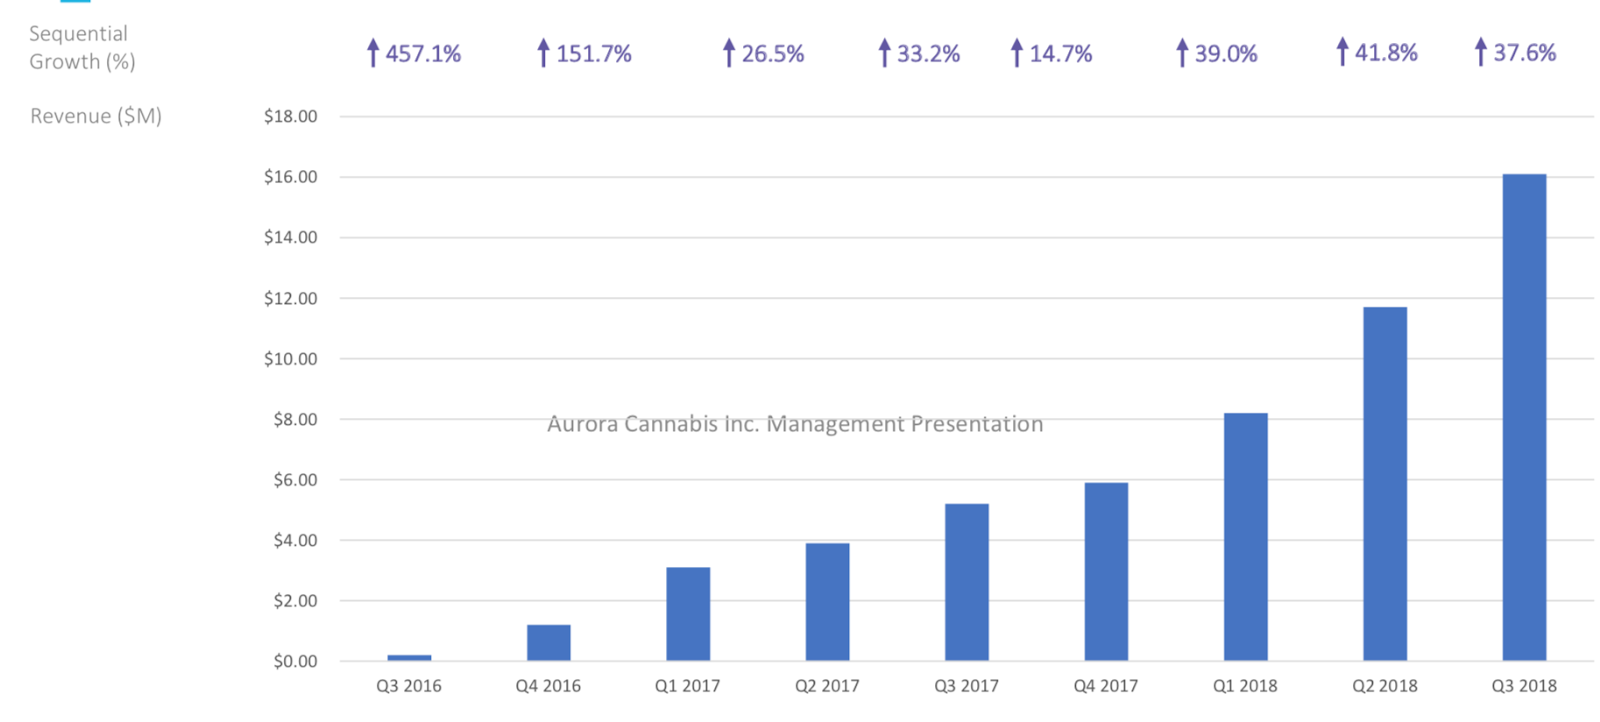 With Cannabis Sales To Start Soon, Aurora Cannabis Is A Play You Need To Know